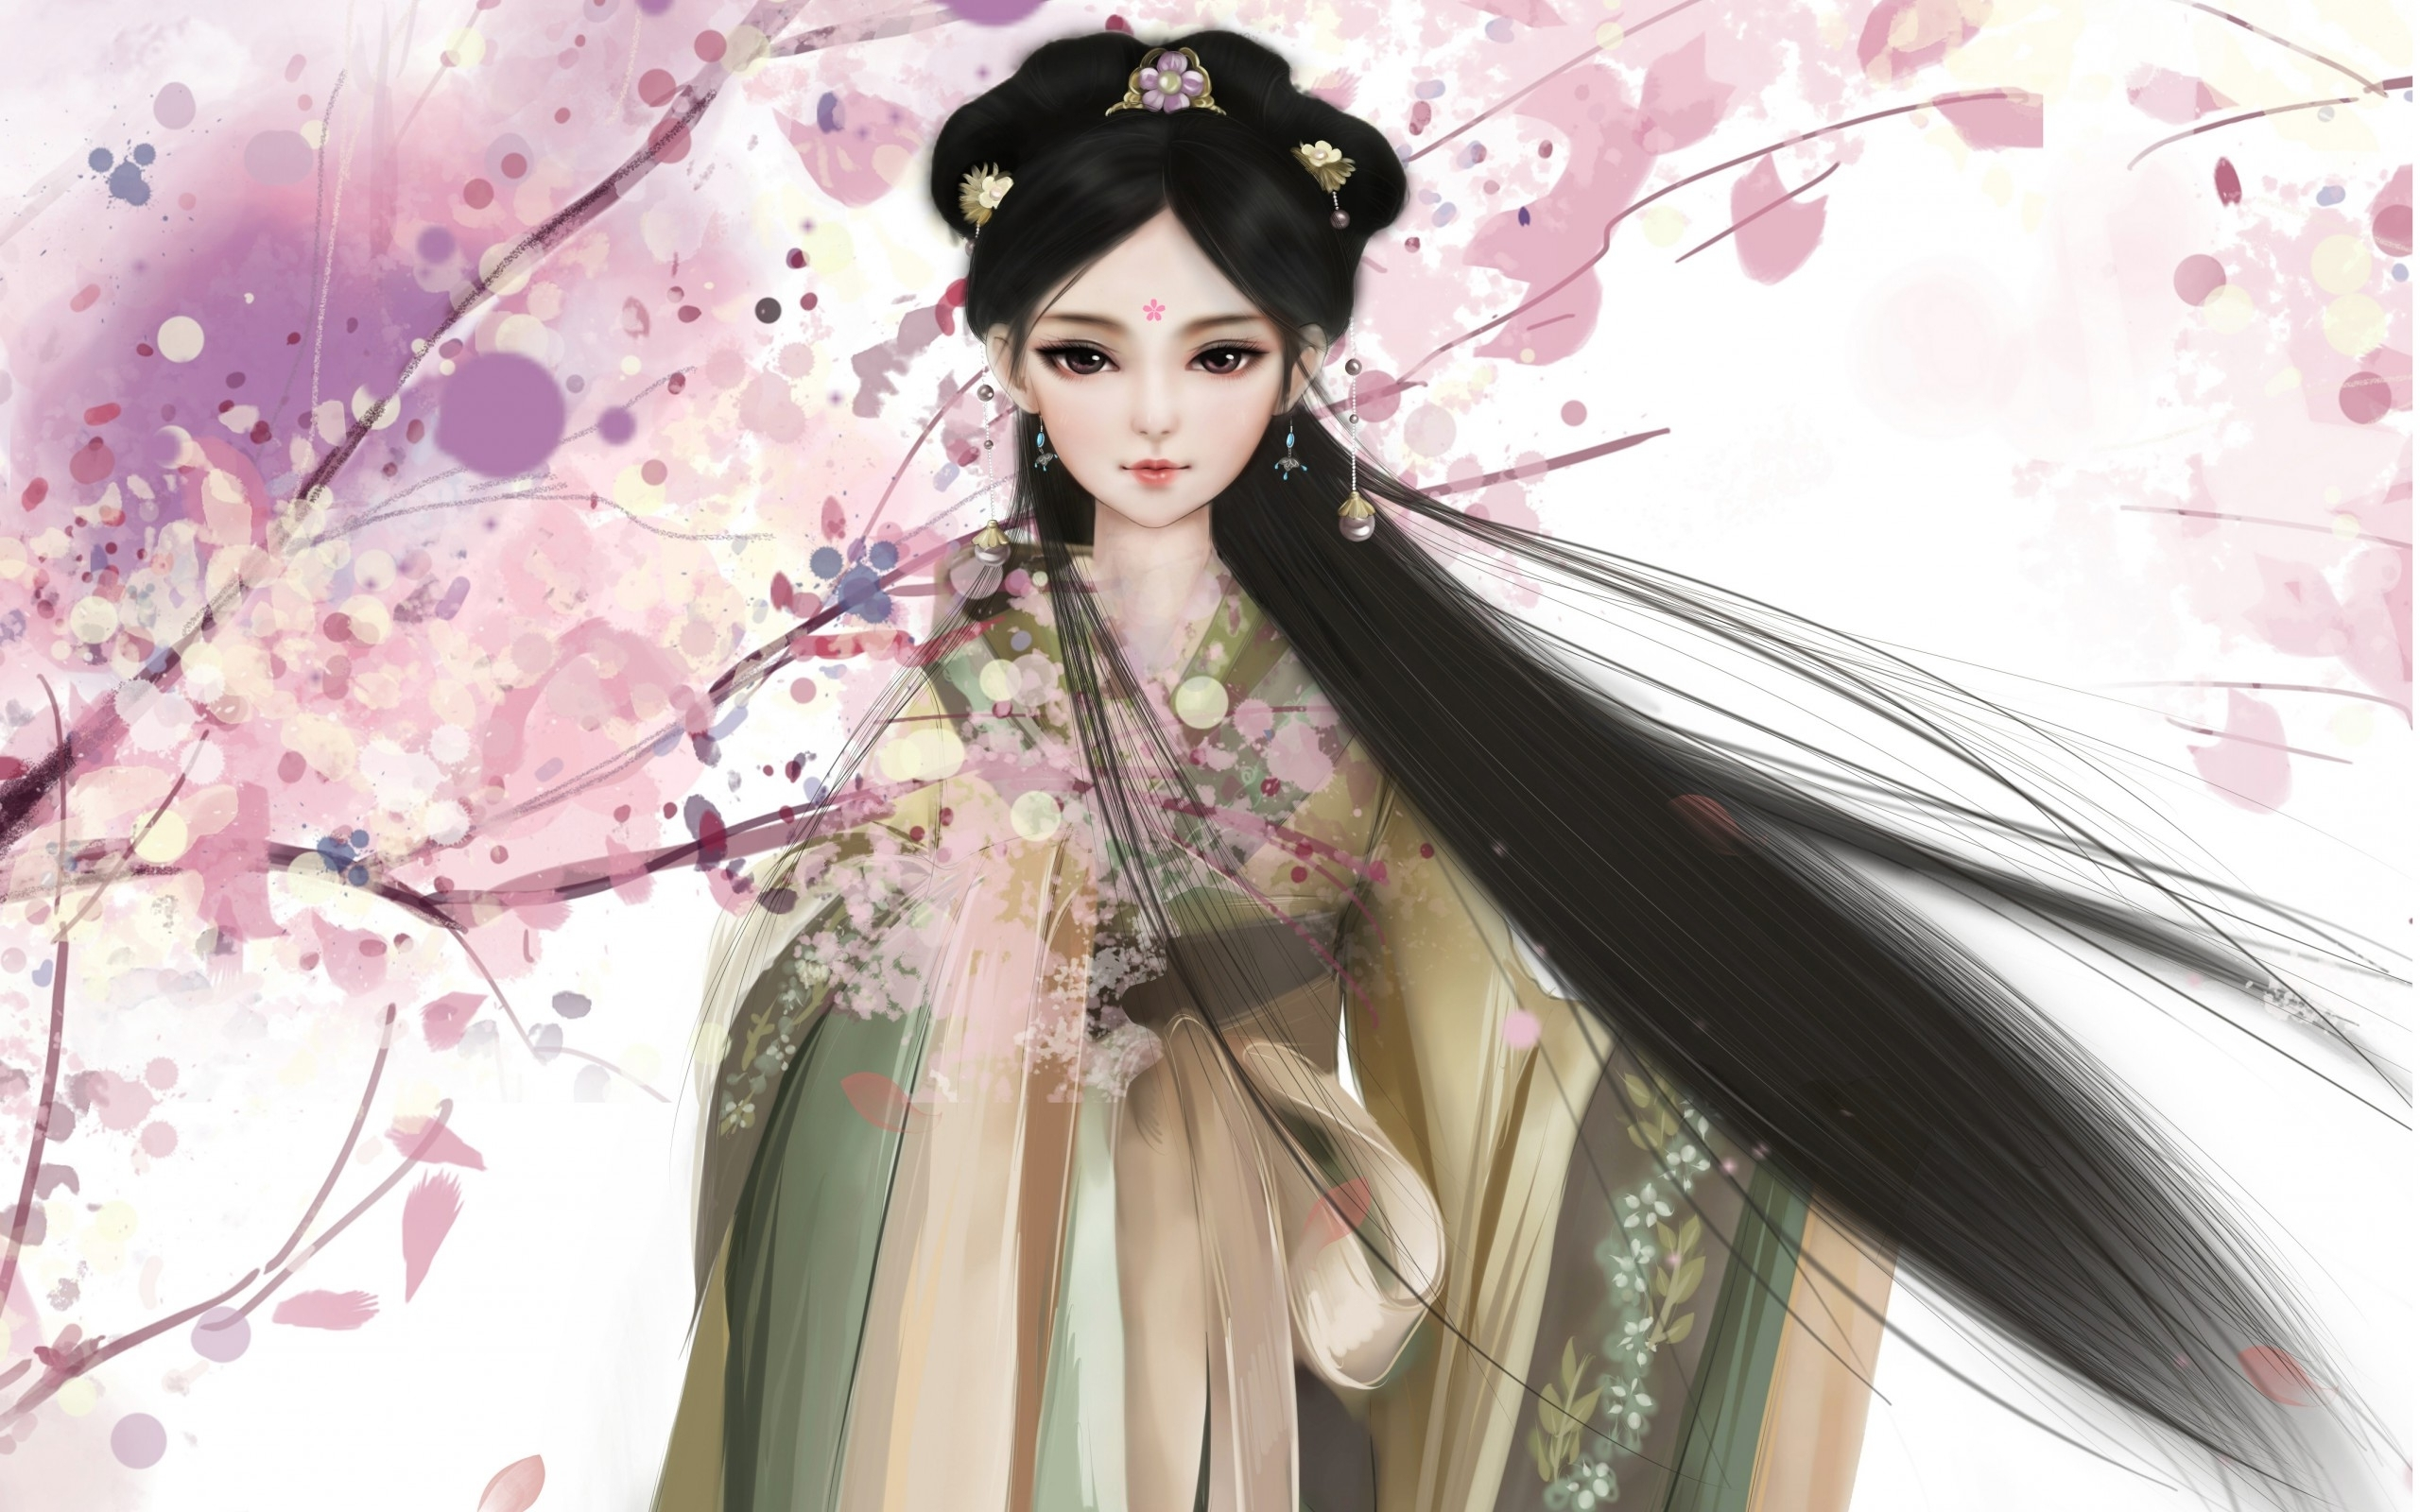 Beautiful geisha wallpaper 29502 2560x1600